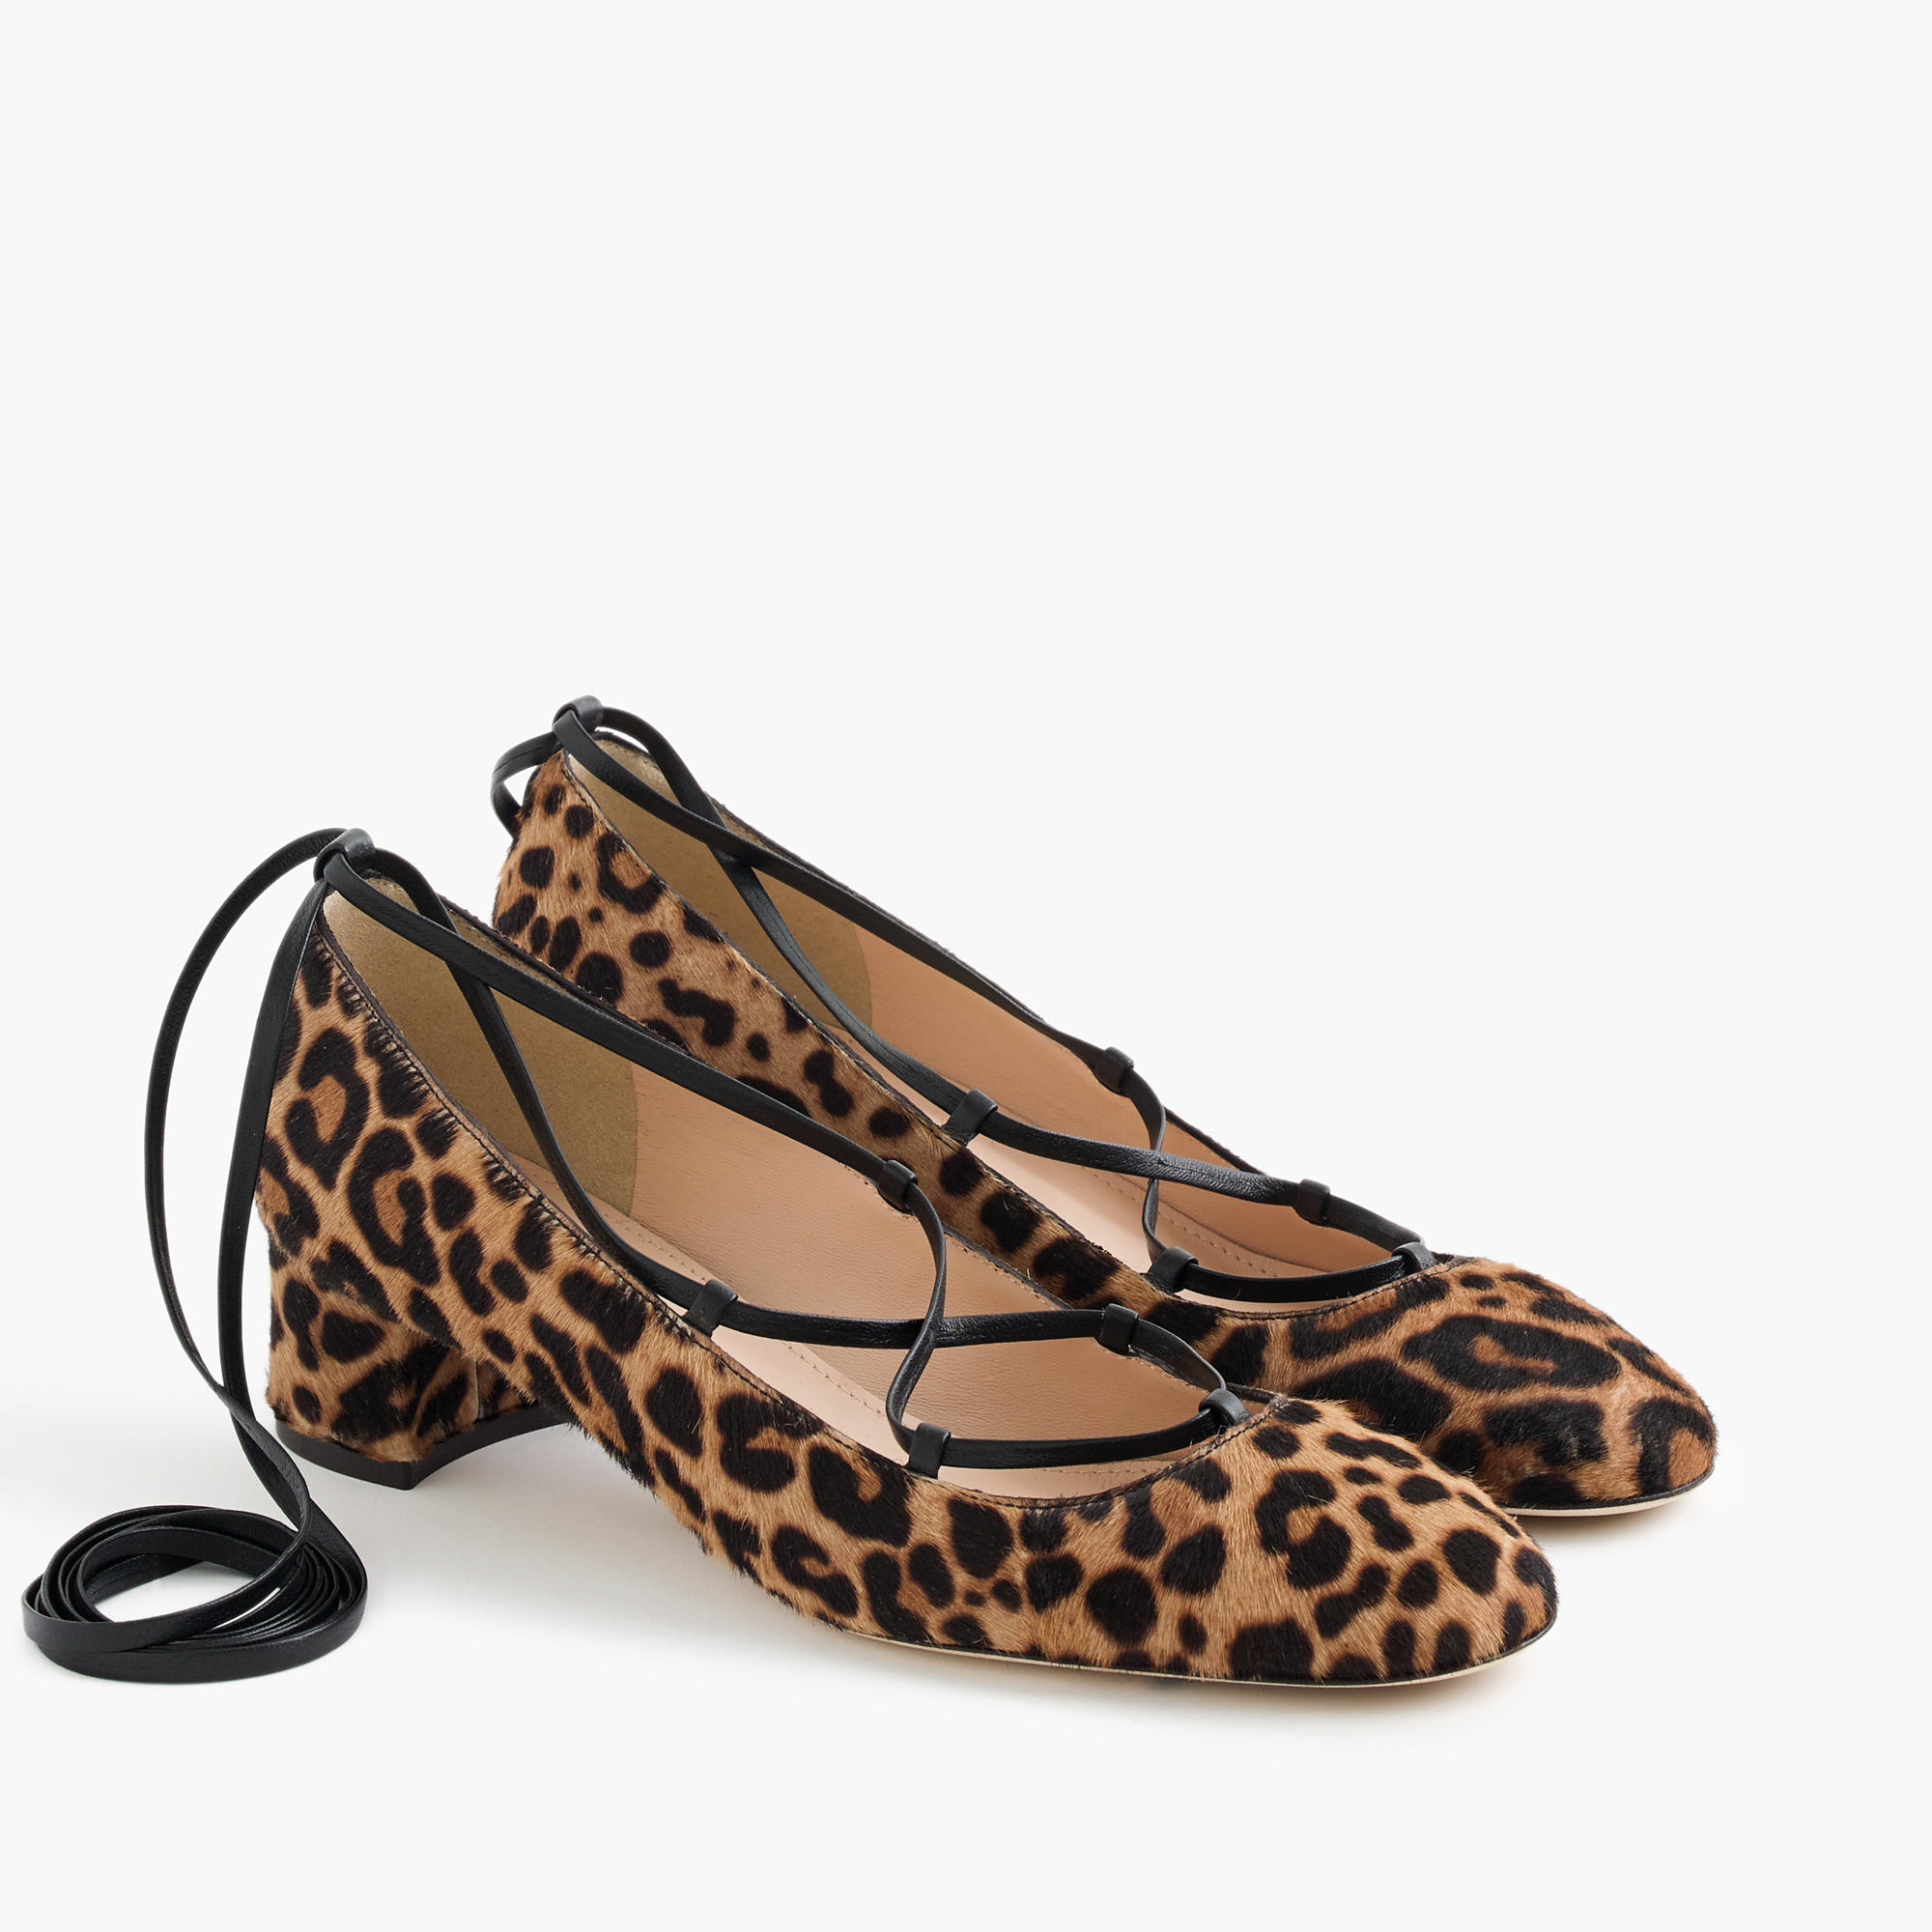 Lace-Up Heels In Leopard Calf Hair : Women's Heels | J.Crew